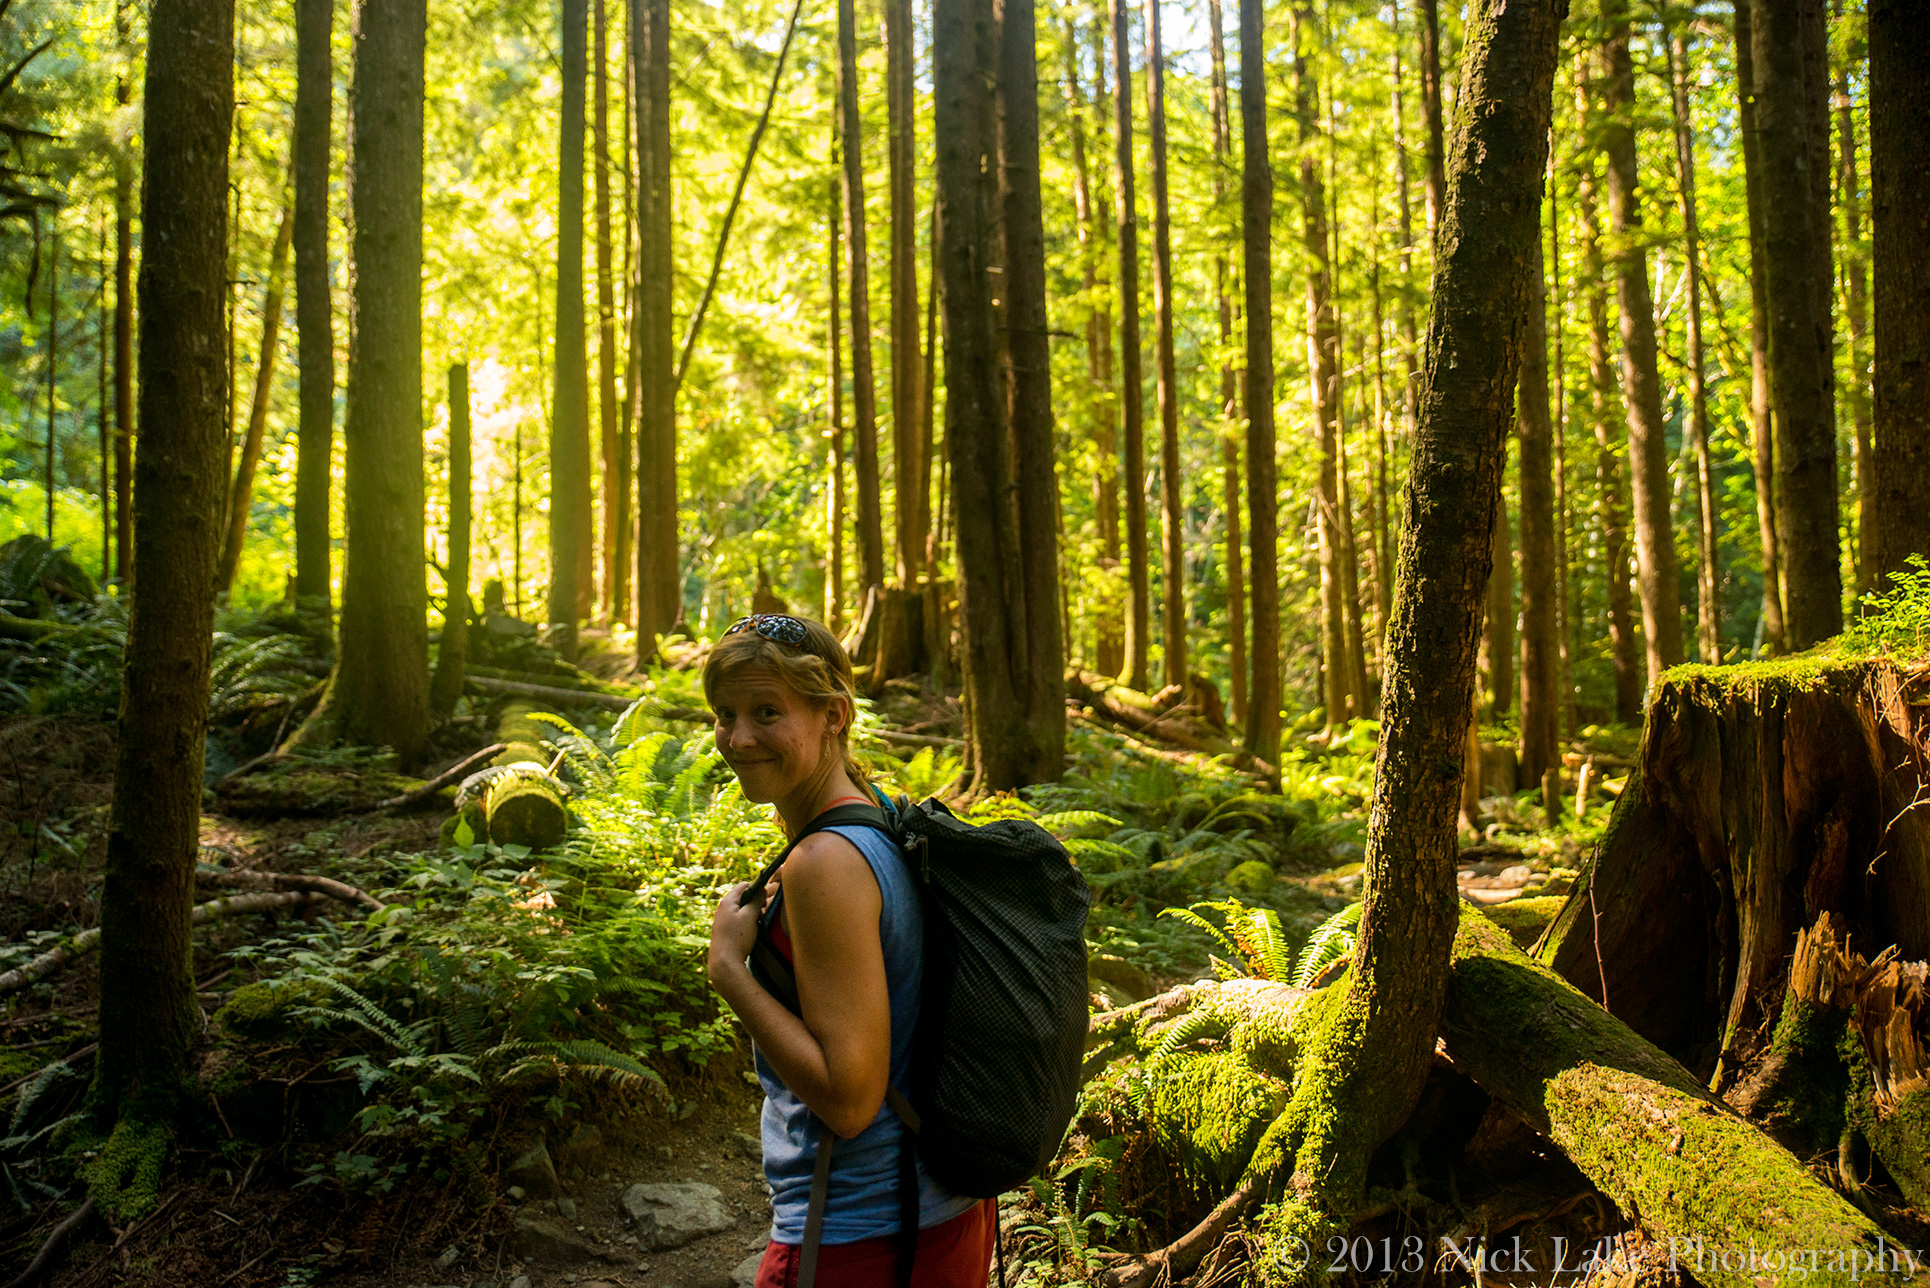 Our sister-in-law's sister, Ali, enjoys the lush Western Washington forest near Serene Lake